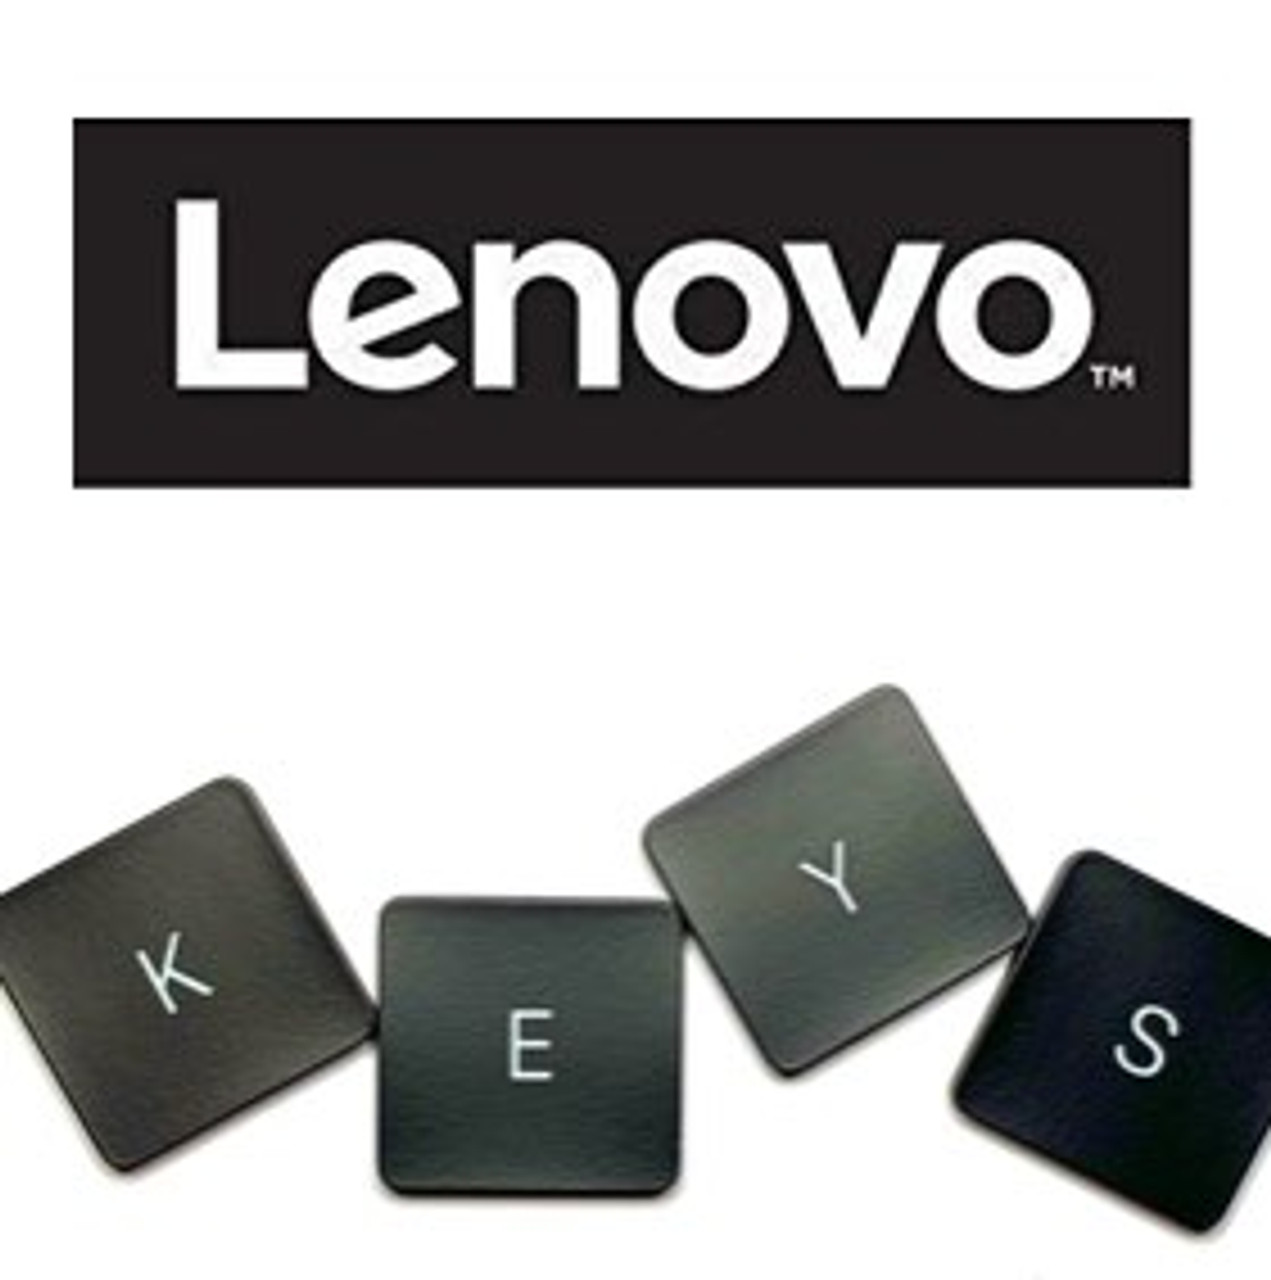 Lenovo ThinkPad T530 Laptop Key Replacement